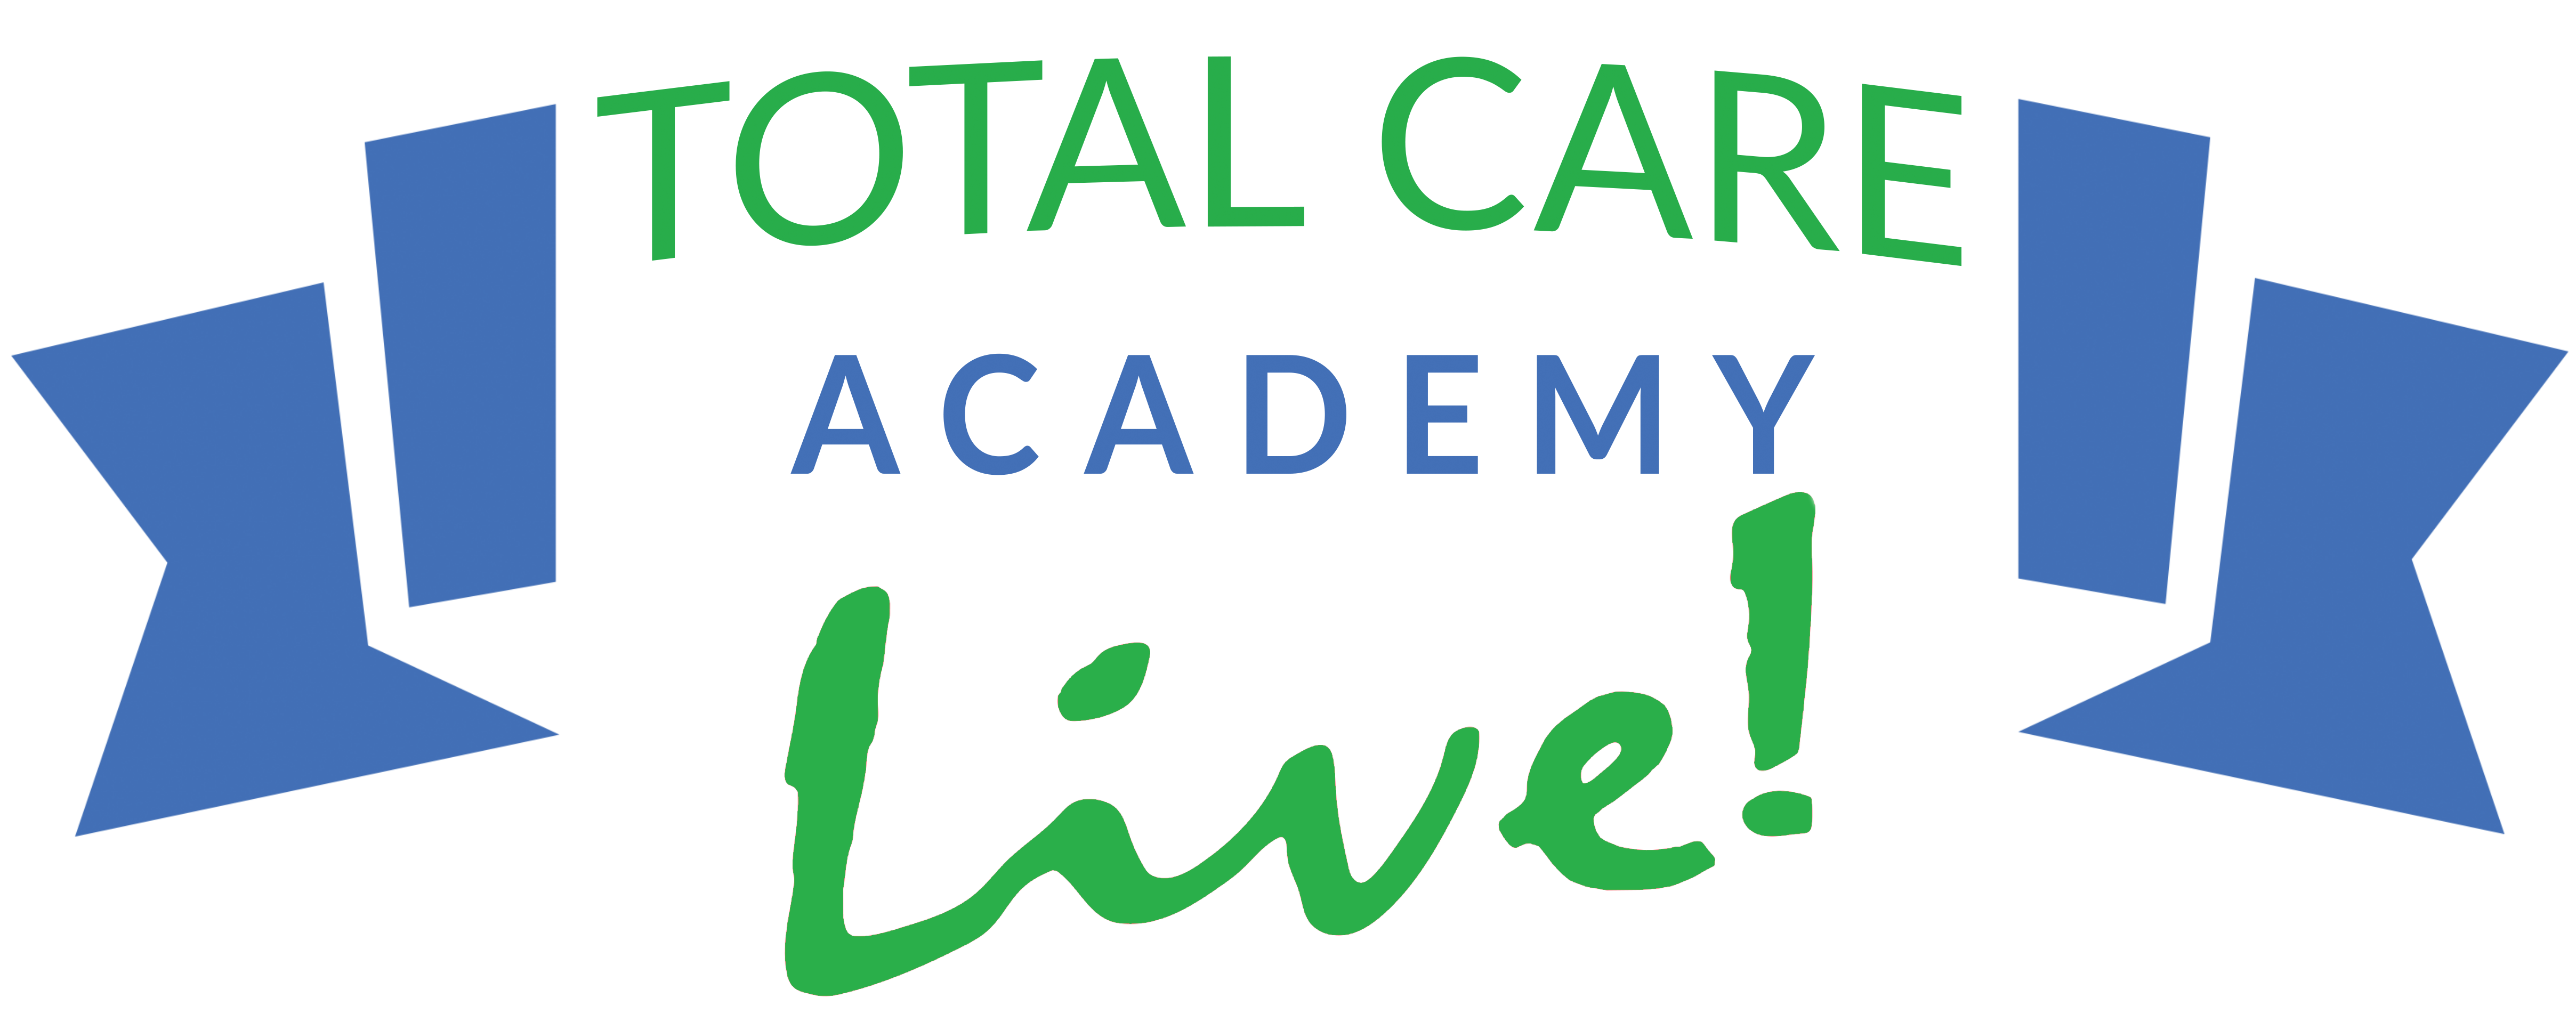 total-care-academy-live-logo-no-leaf.png